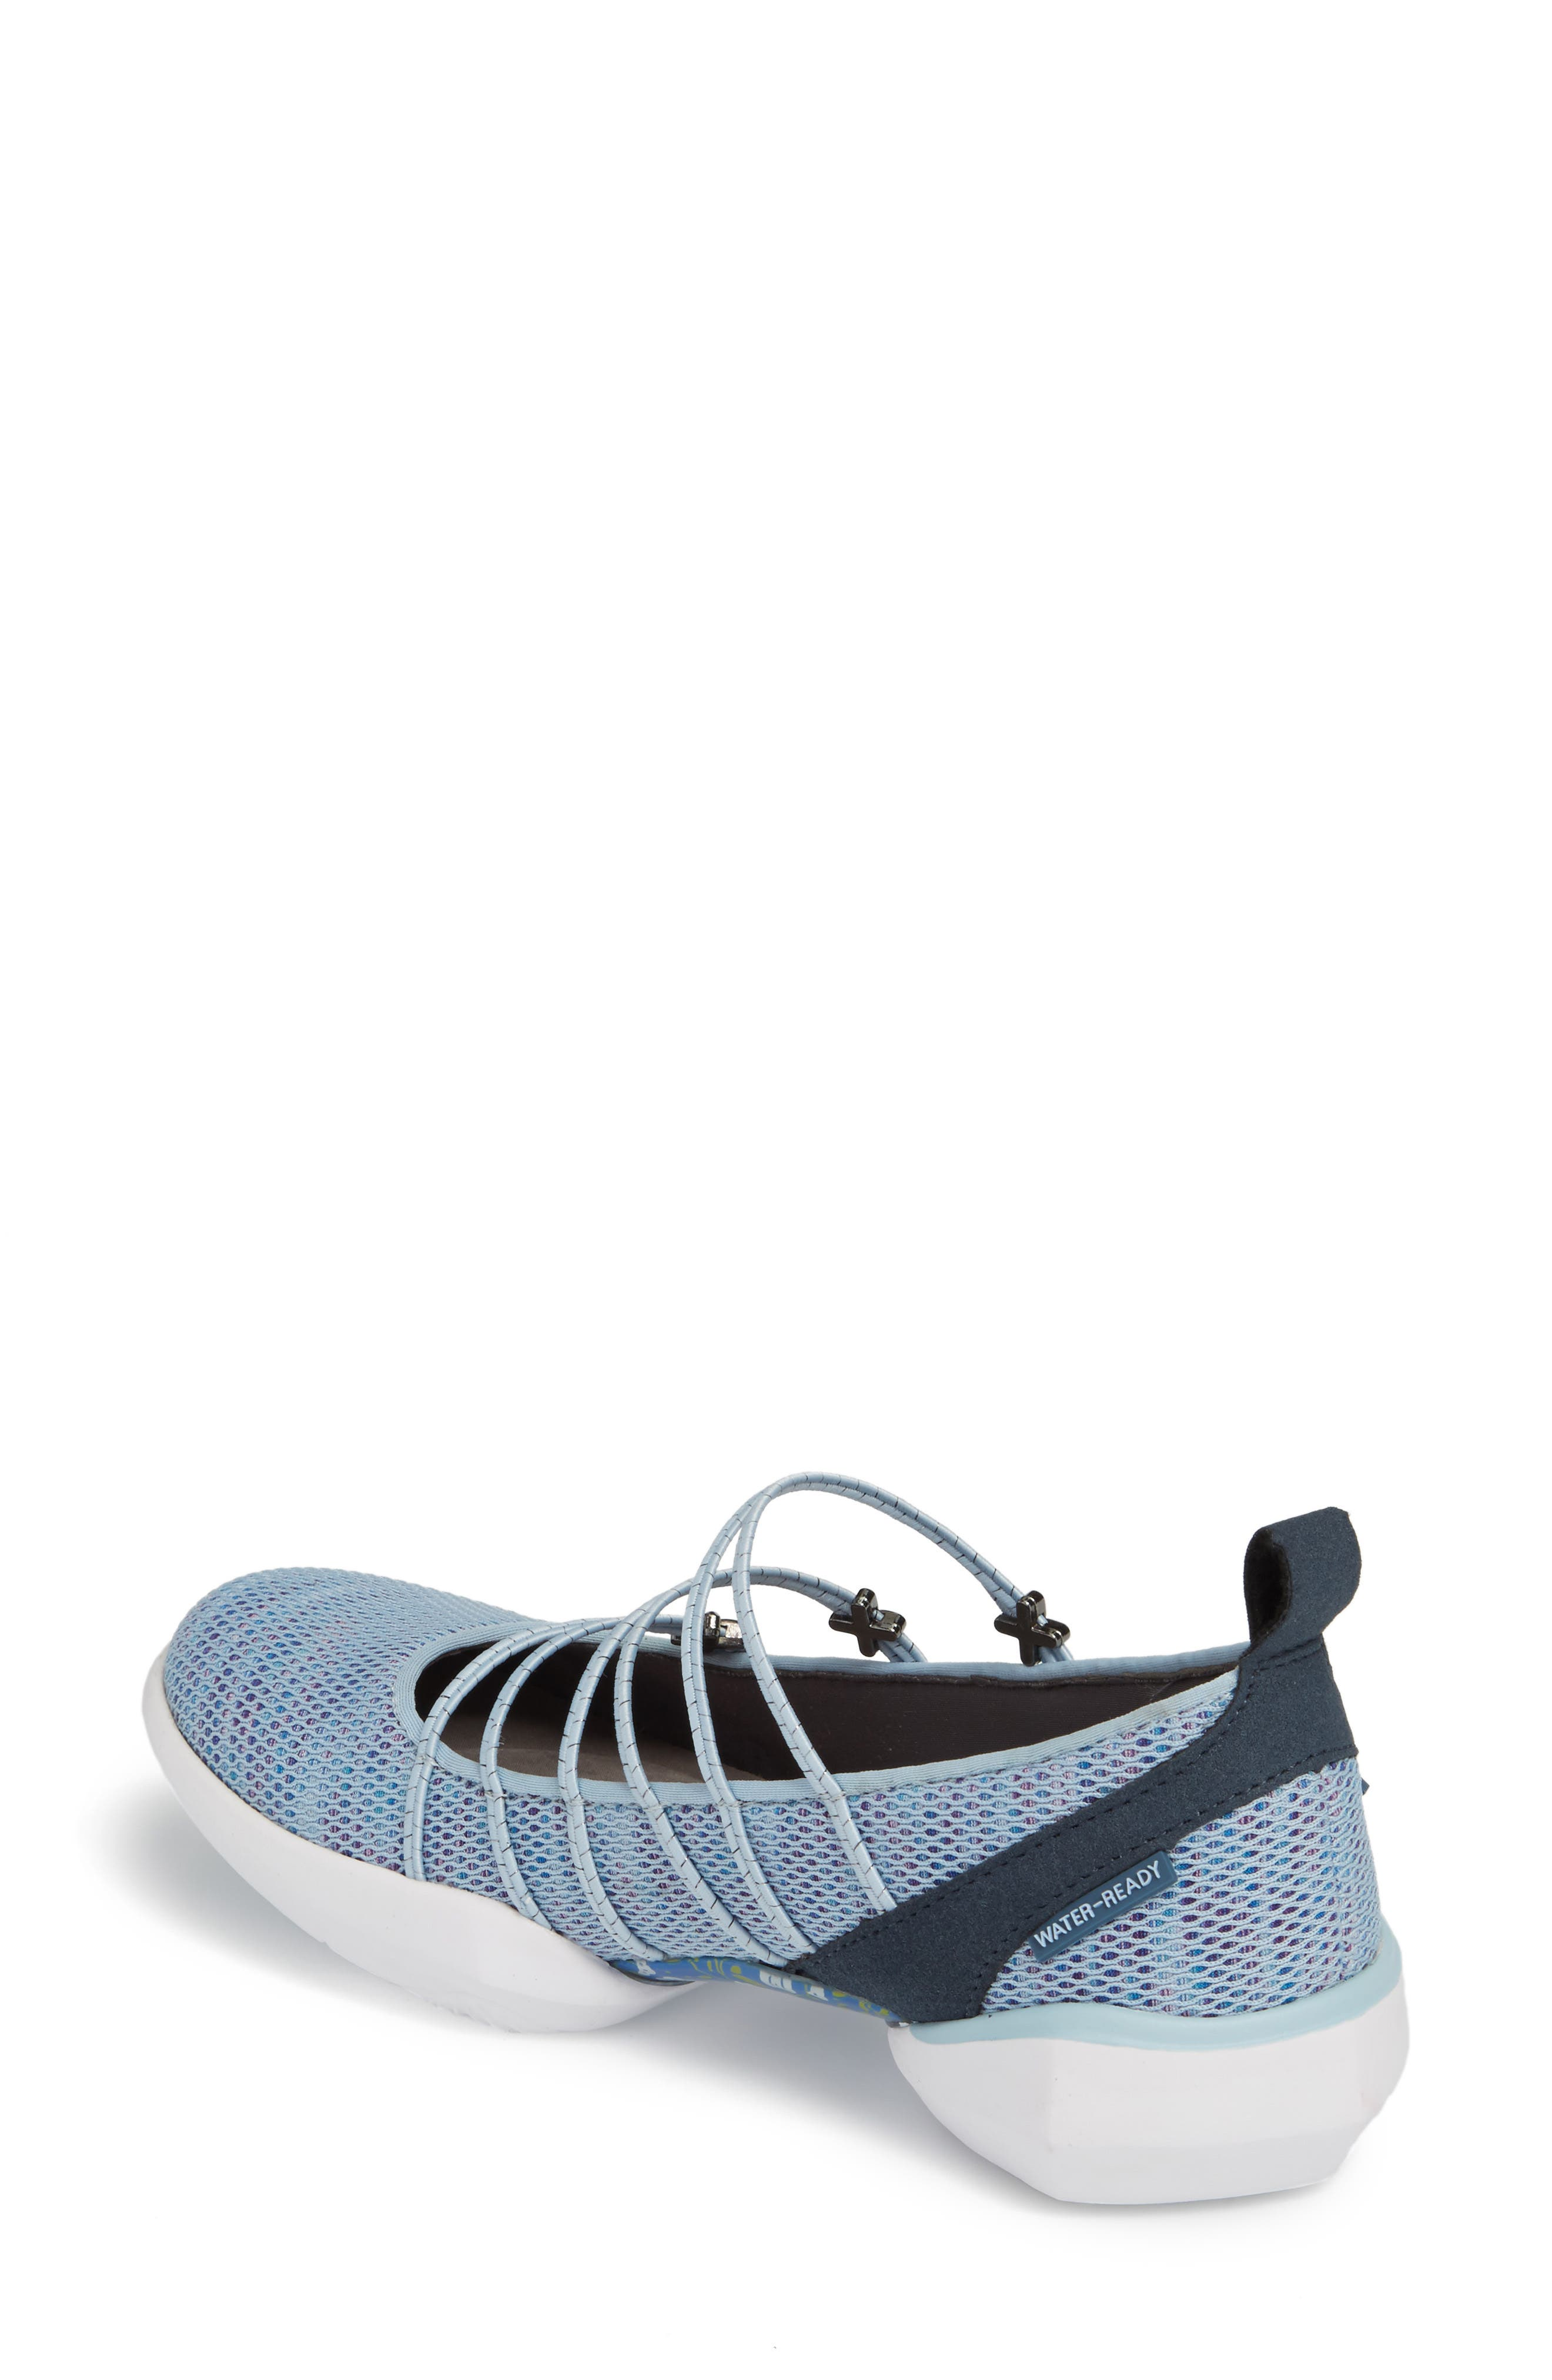 Cheyenne Water Ready Slip-on,                             Alternate thumbnail 2, color,                             Powder Blue